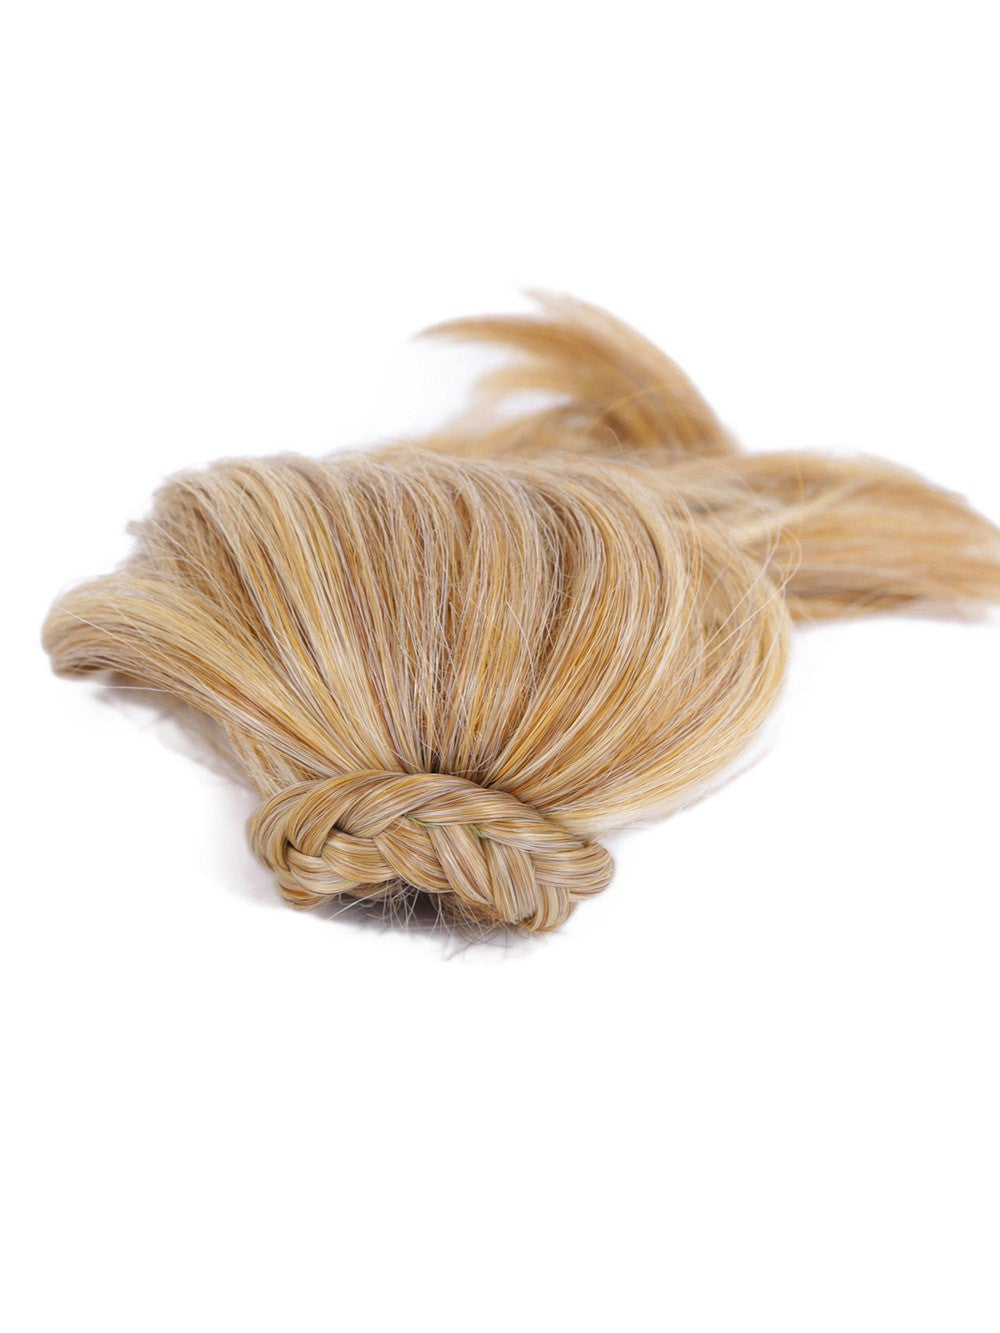 "Tru2Life heat-friendly synthetic hair ponytail, 10"" long."